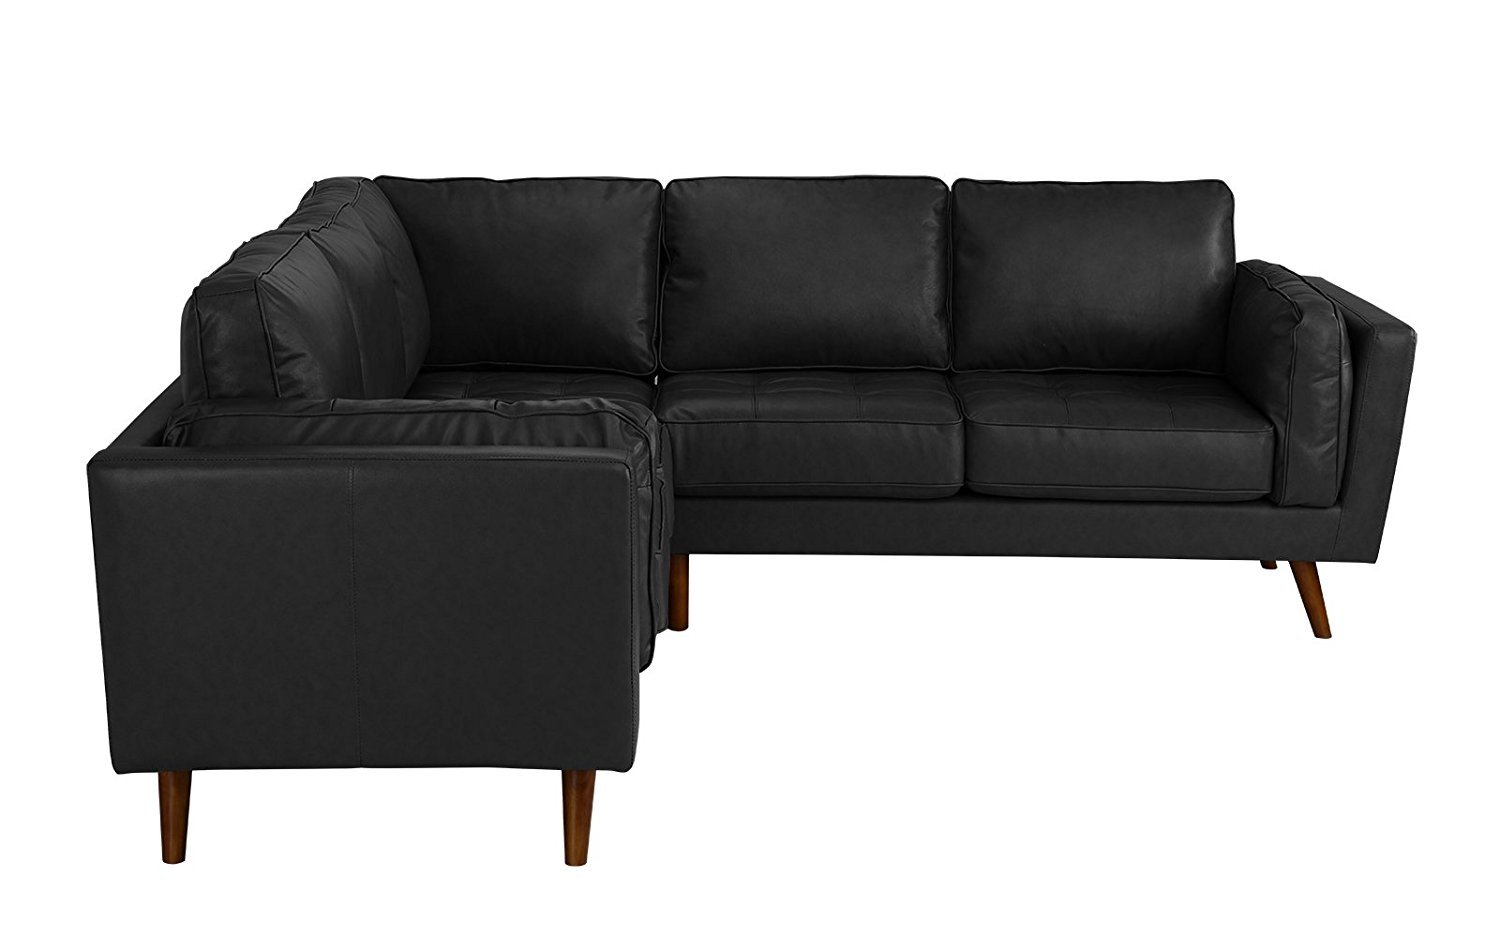 Details About Mid Century Couch Modern Tufted Leather Sectional Sofa Black